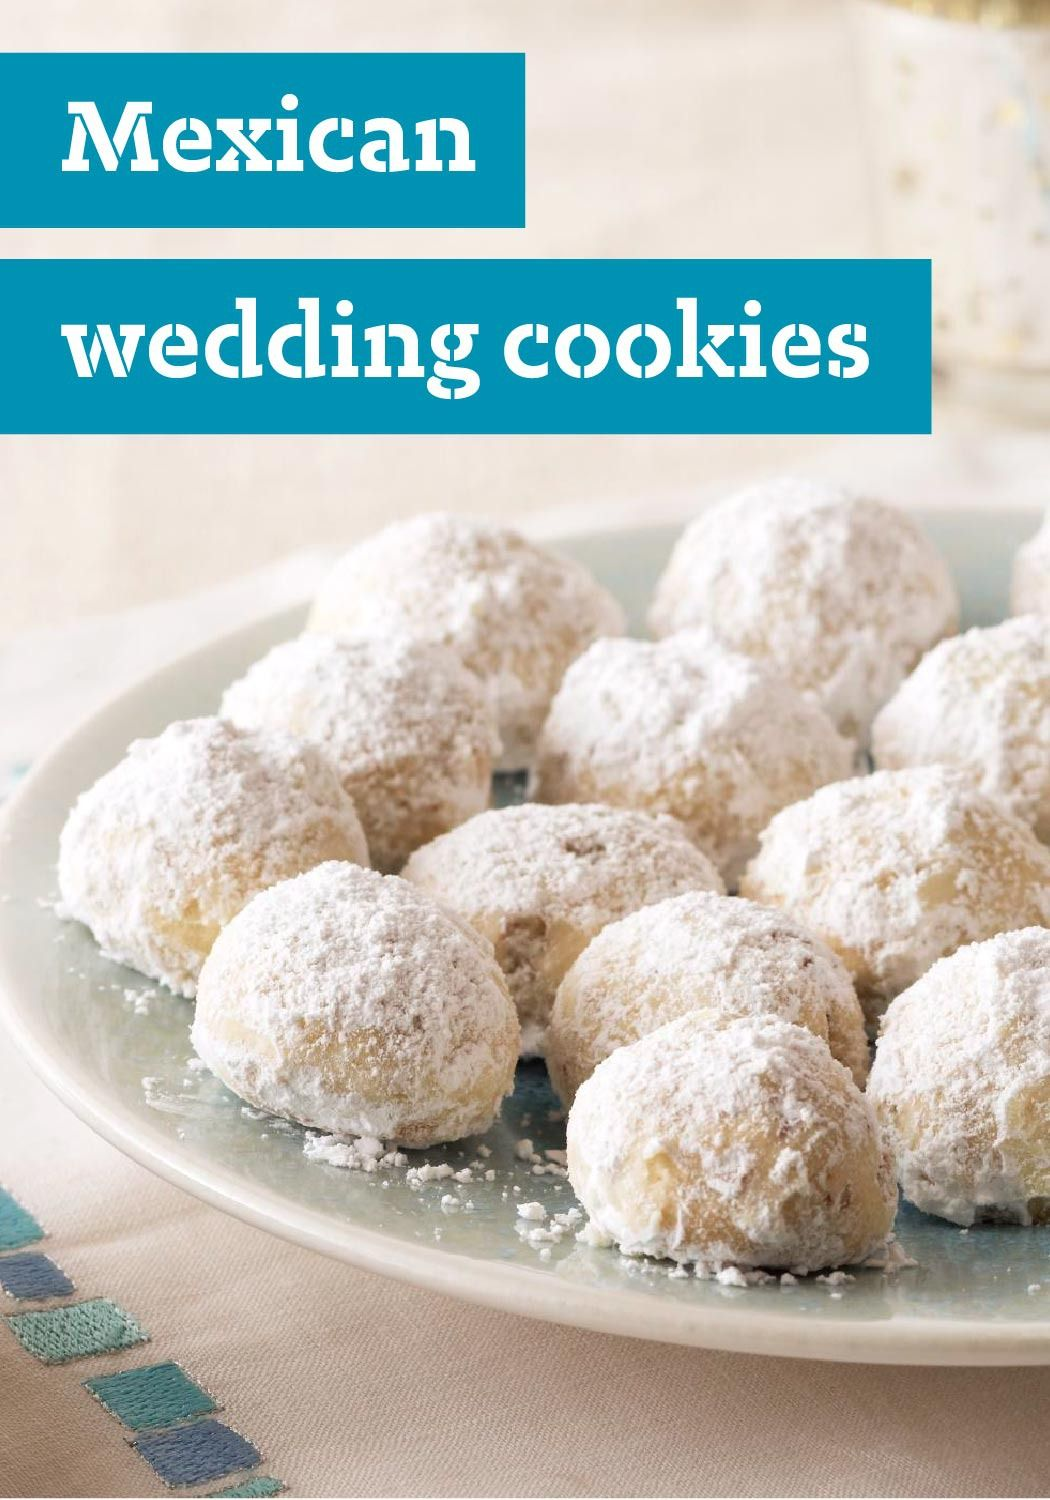 Mexican Wedding Cookies — Five ingredients and 20 minutes